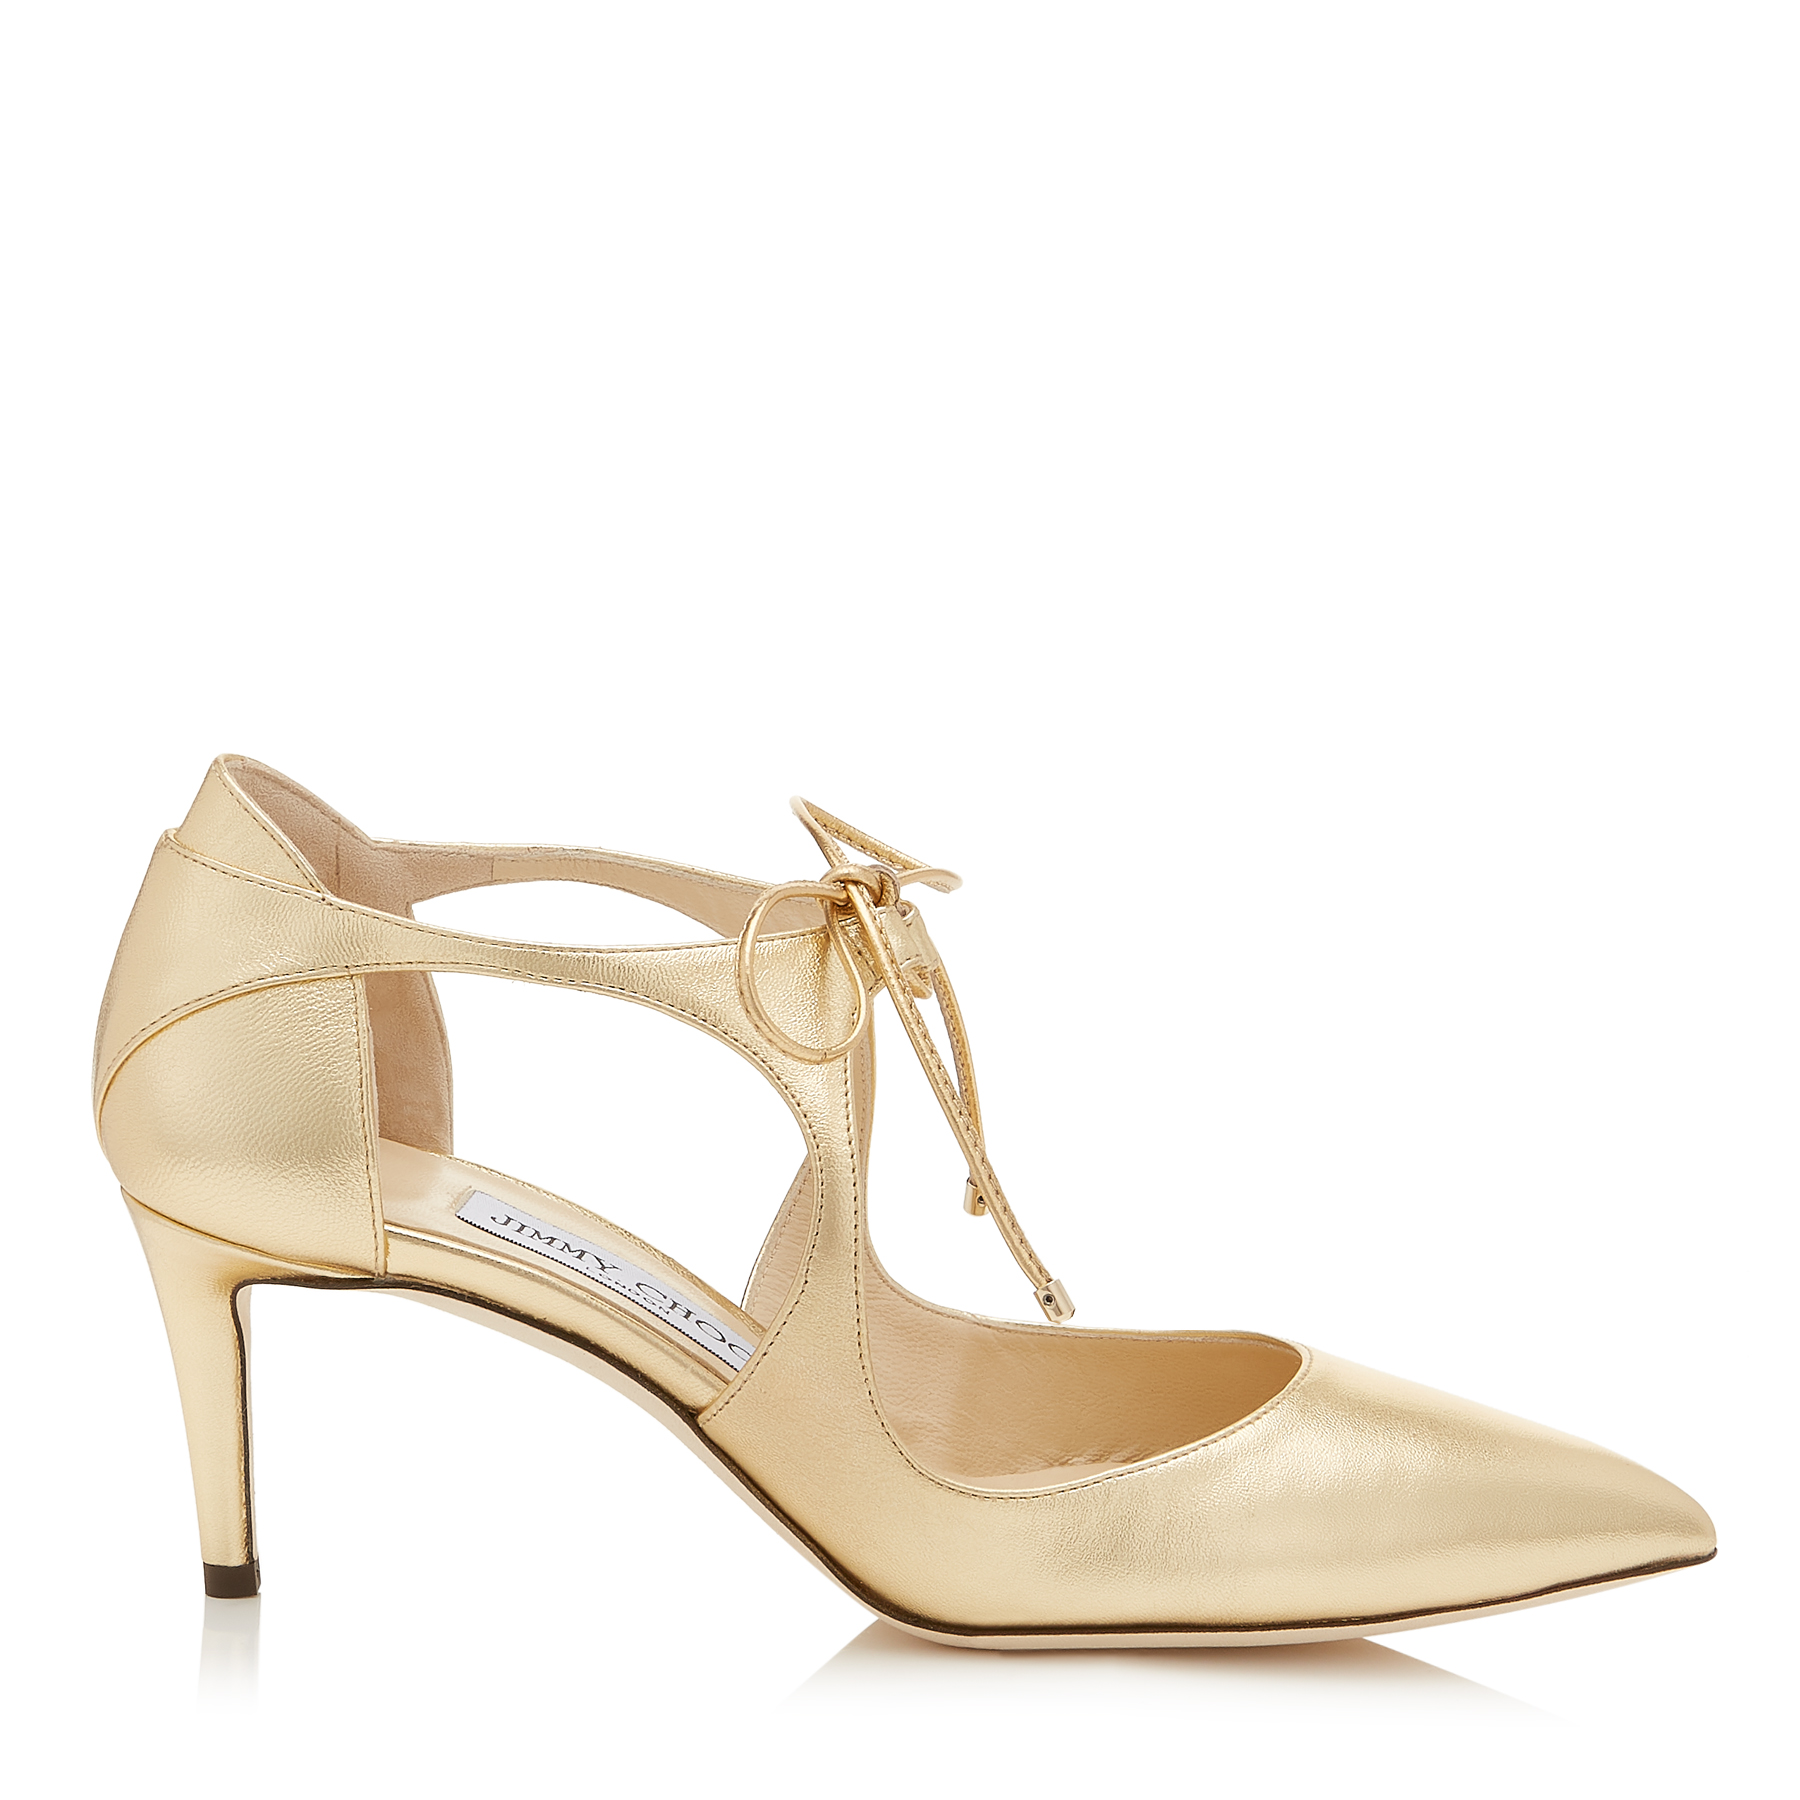 VANESSA 65 Shiny Gold Metallic Leather Pointy Toe Pumps by Jimmy Choo